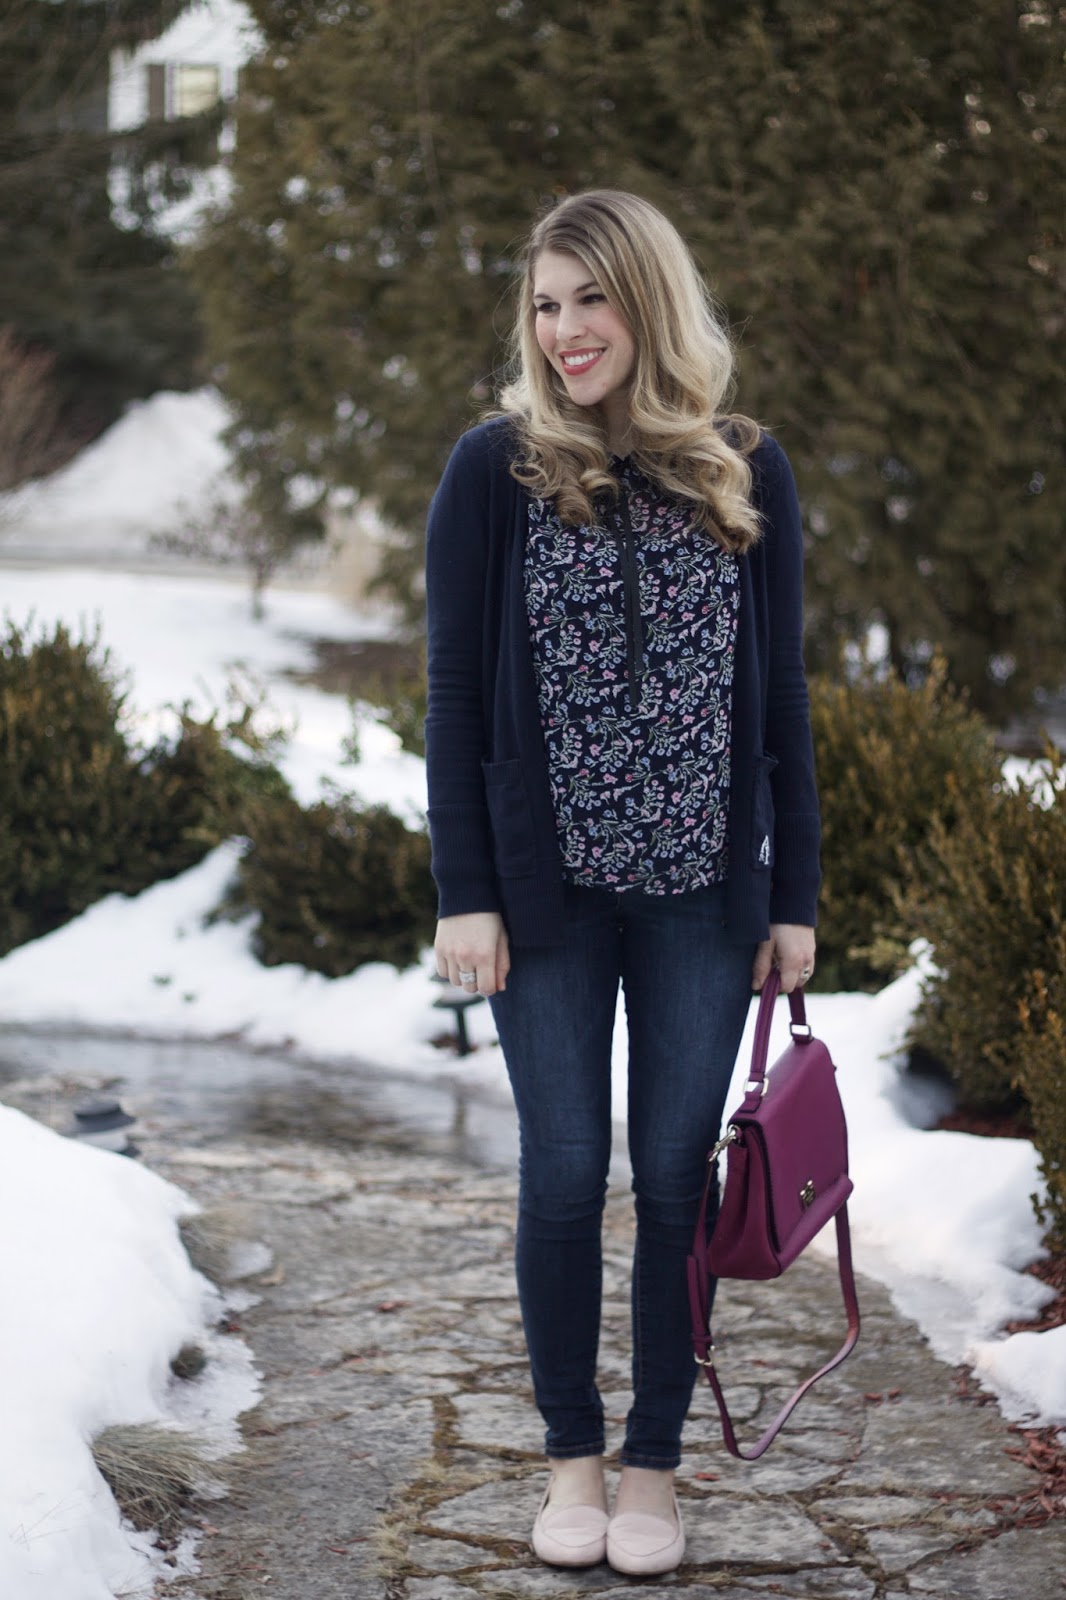 navy tie neck floral blouse, navy cardigan, old navy rockstar jeans, Kate Spade plum bag, blush loafers, casual Friday outfit